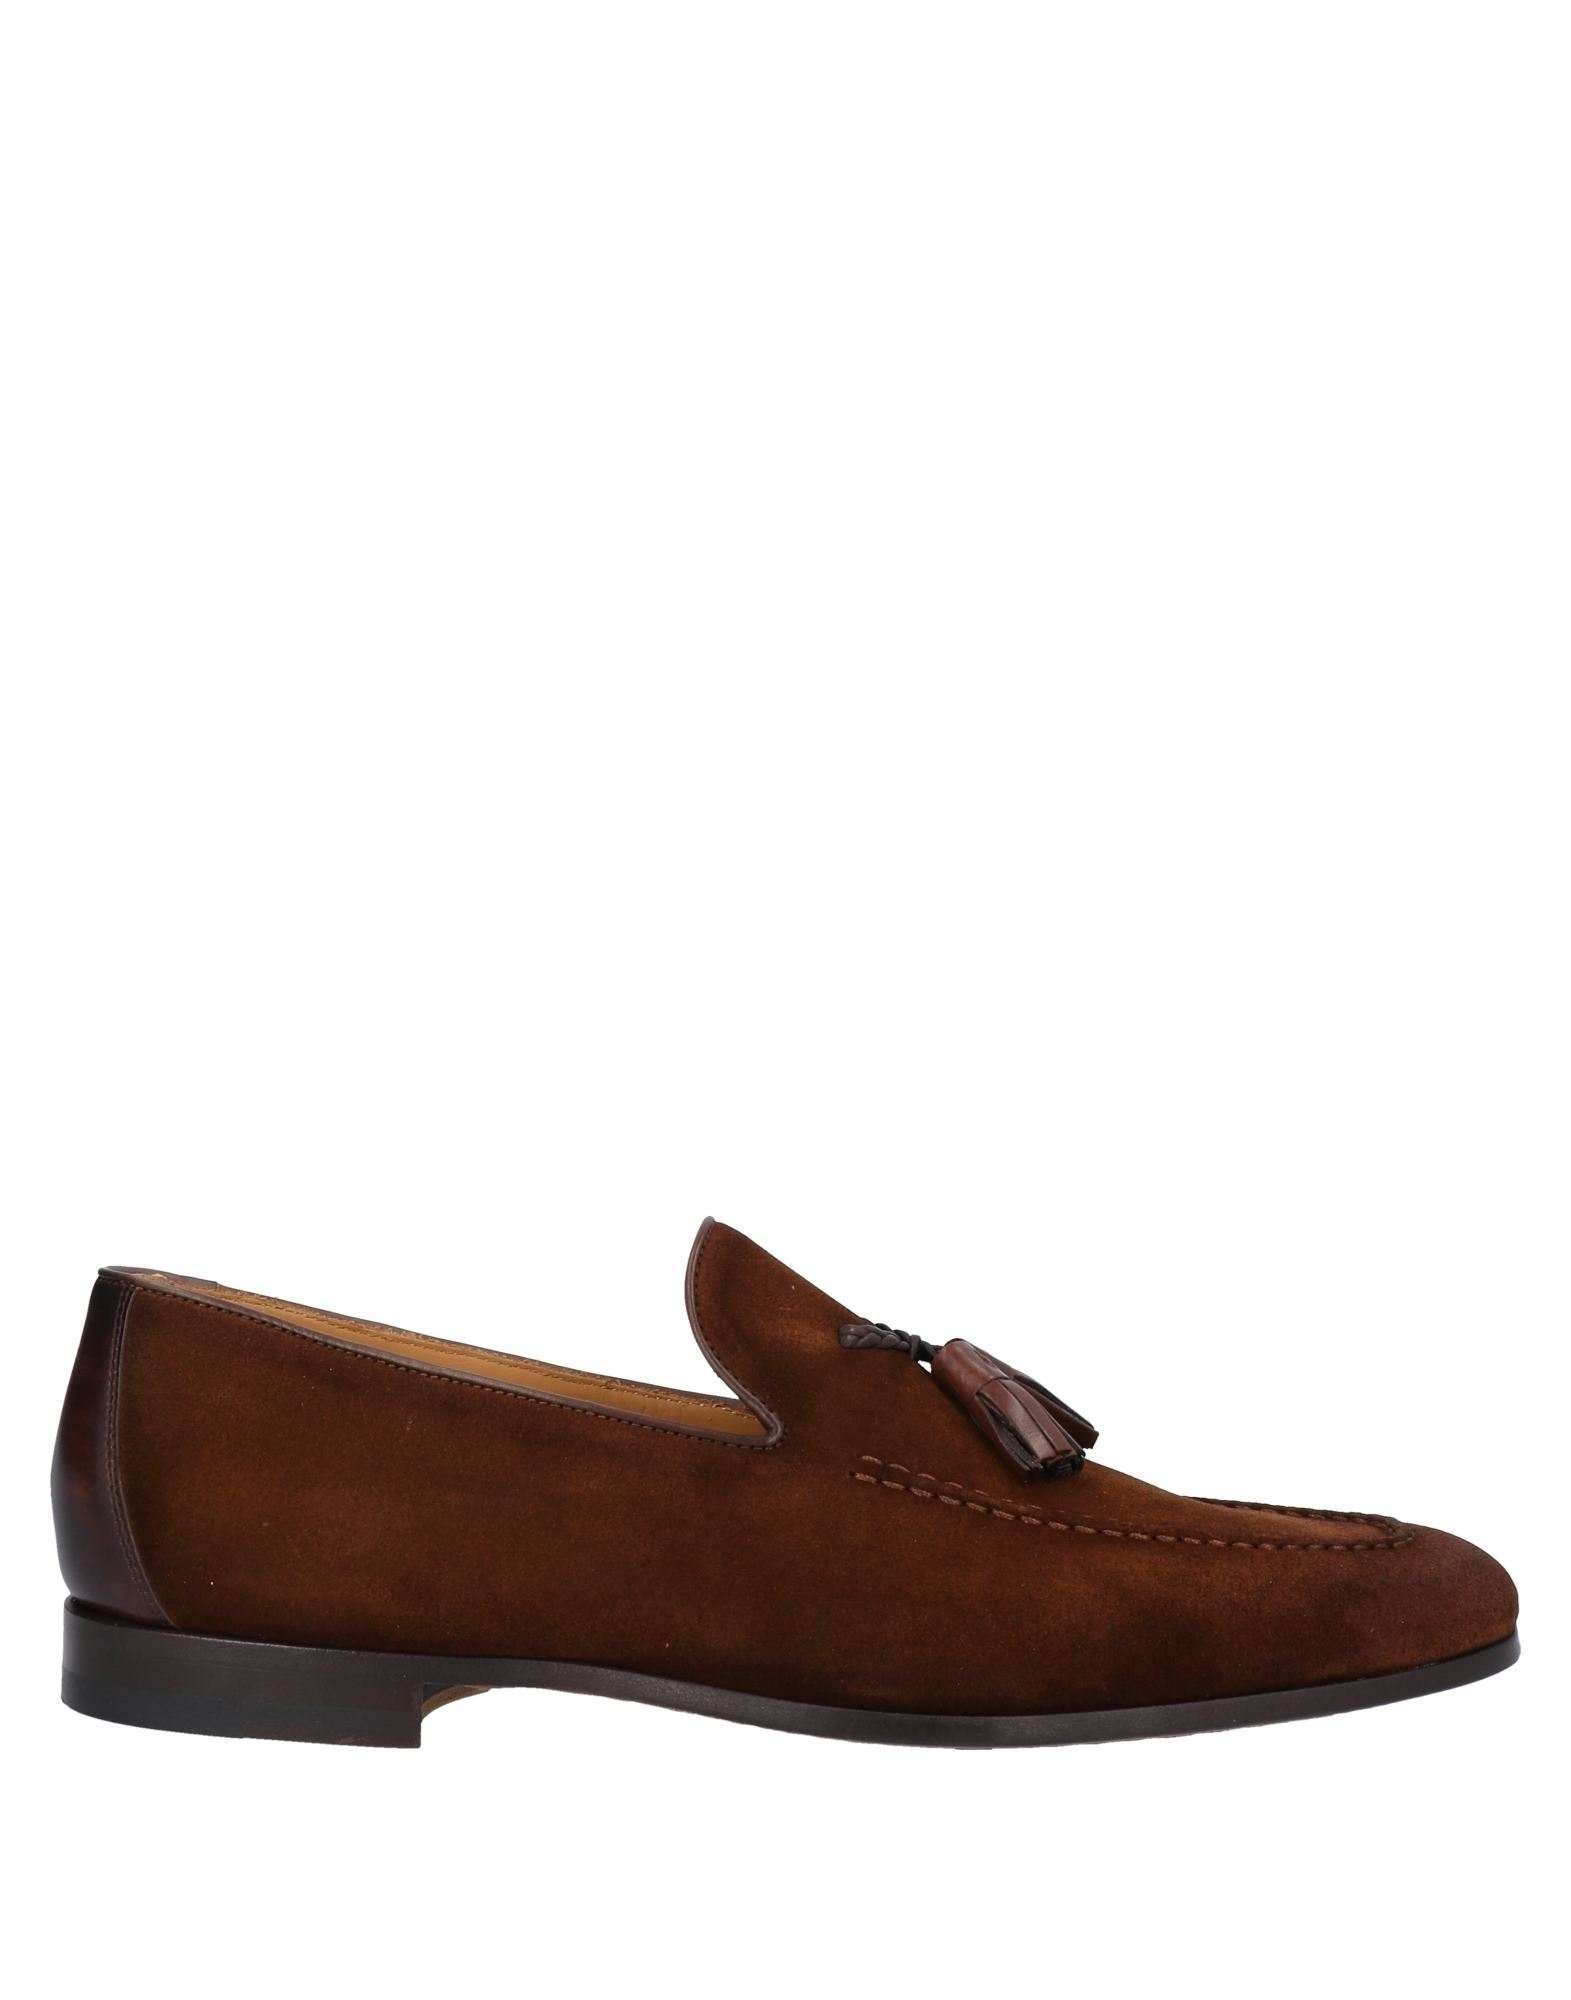 MAGNANNI Loafers. leather, tassels, solid color, round toeline, flat, leather lining, leather sole, contains non-textile parts of animal origin. Soft Leather